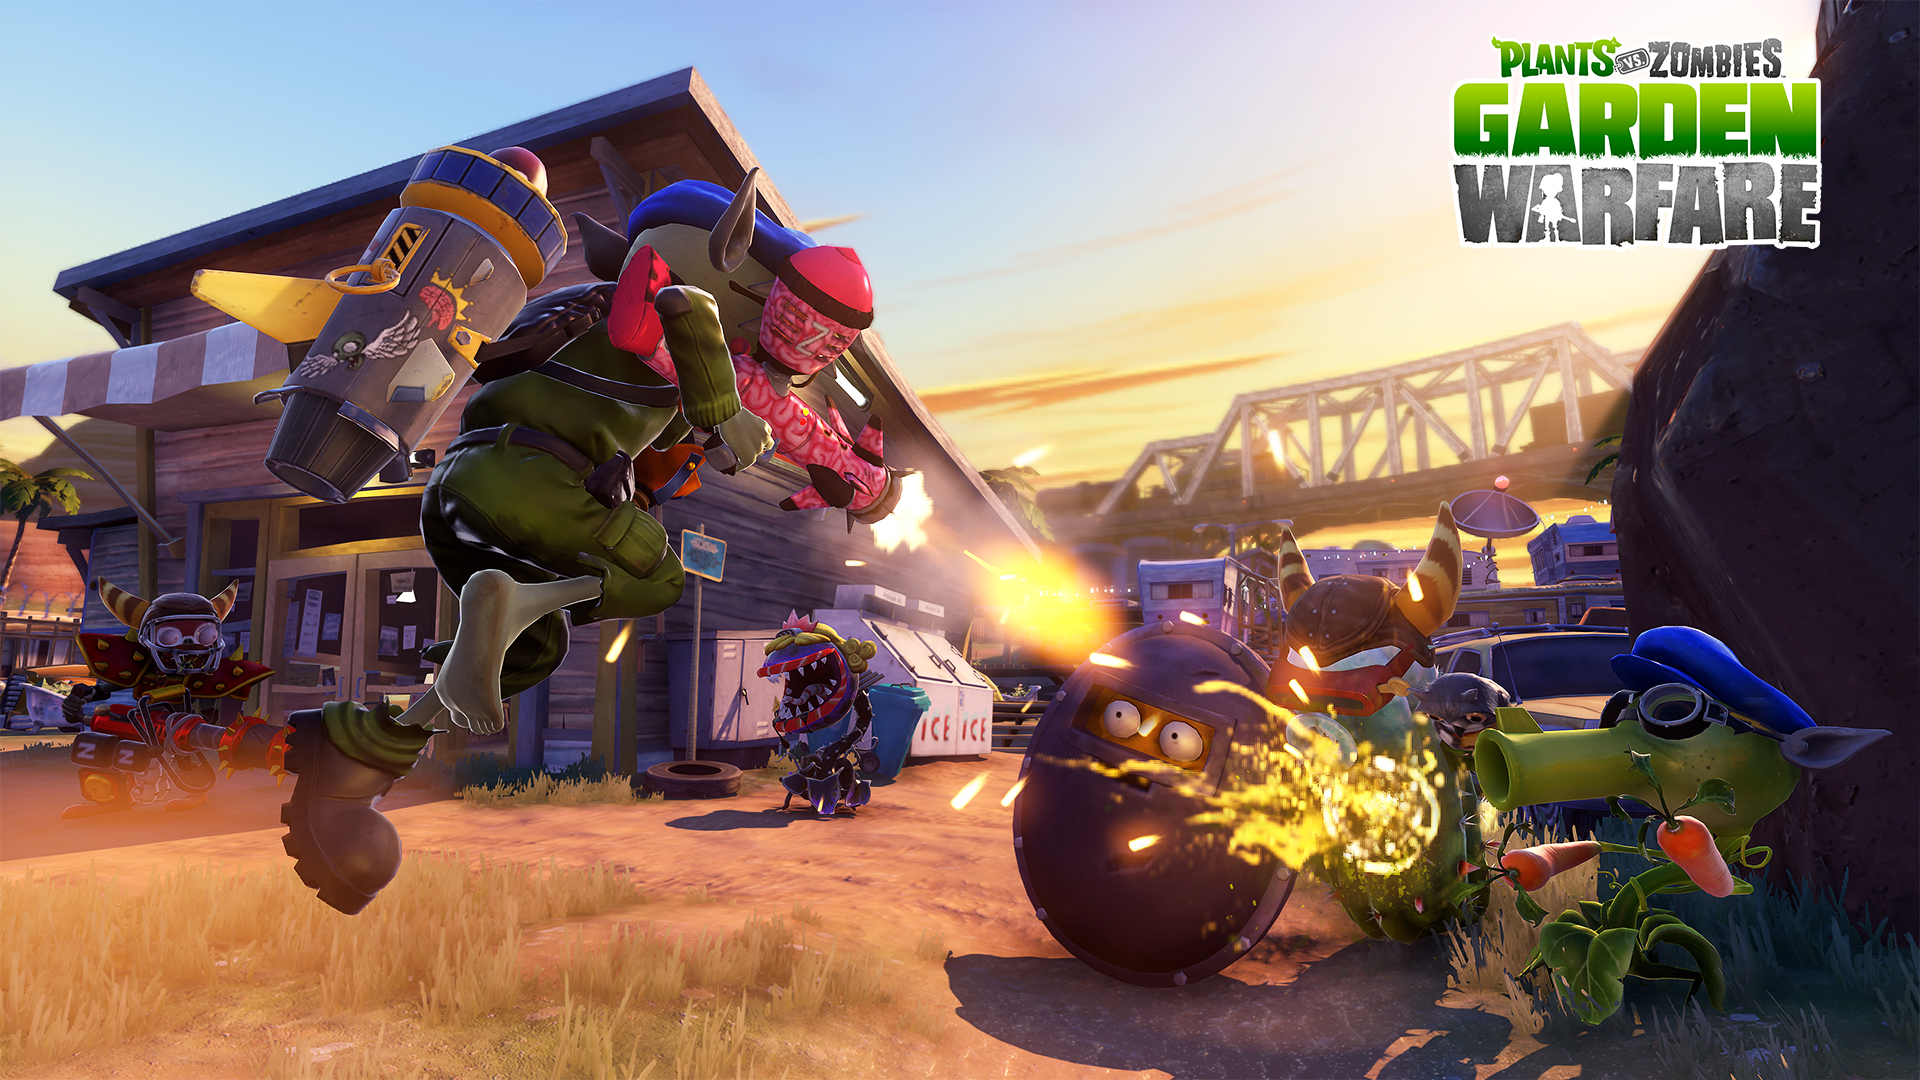 Plants vs zombies garden warfare confirmed for playstation consoles 1080p and 60 fps on ps4 for Plants vs zombies garden warfare 2 ps4